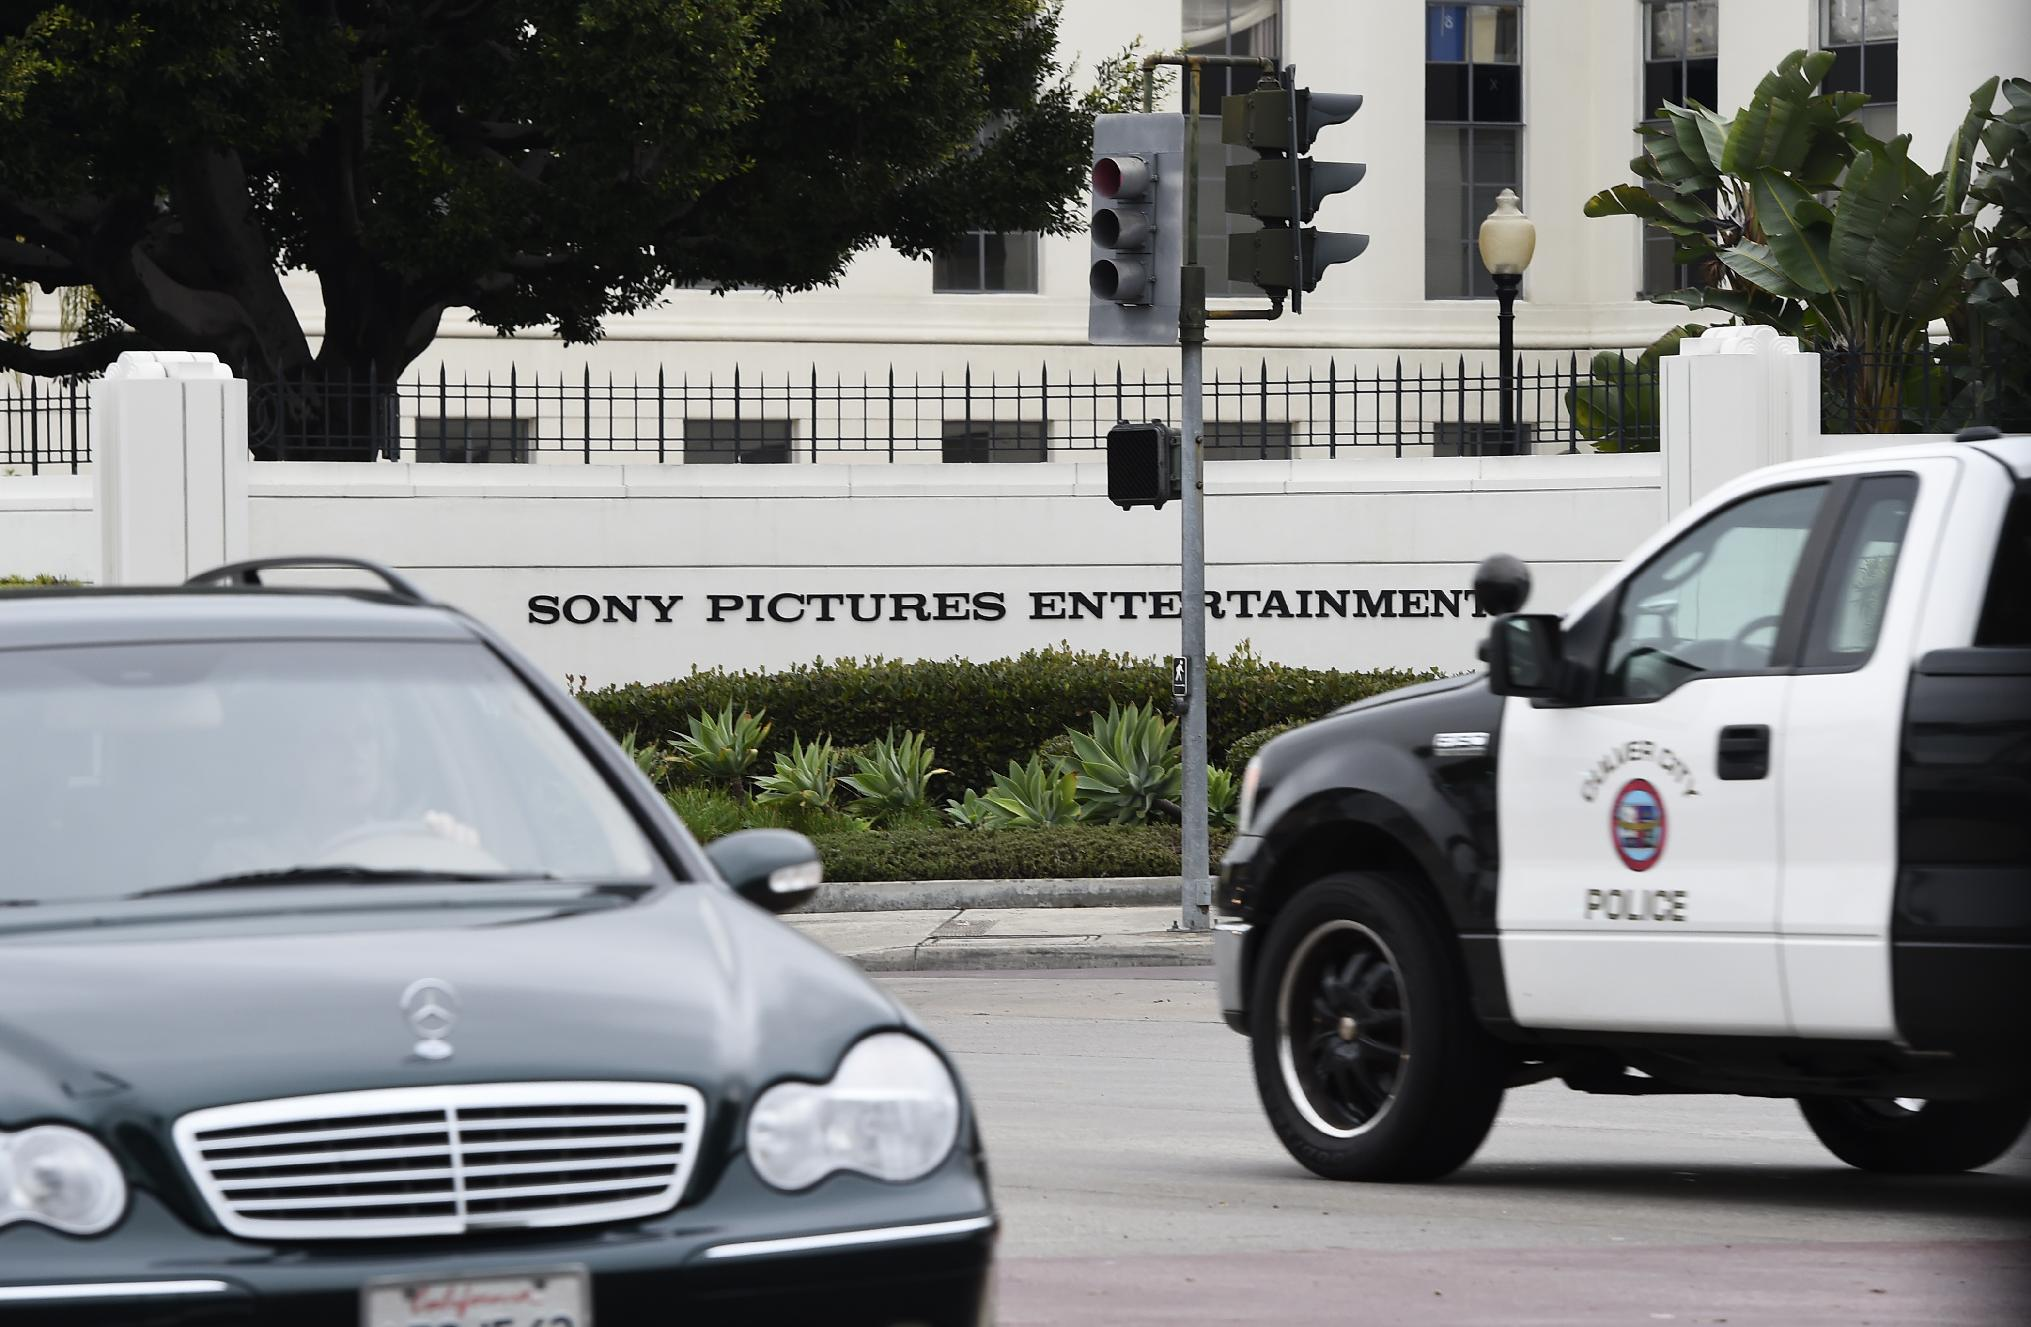 Sony cancels parody film as NKorea suspected over hack